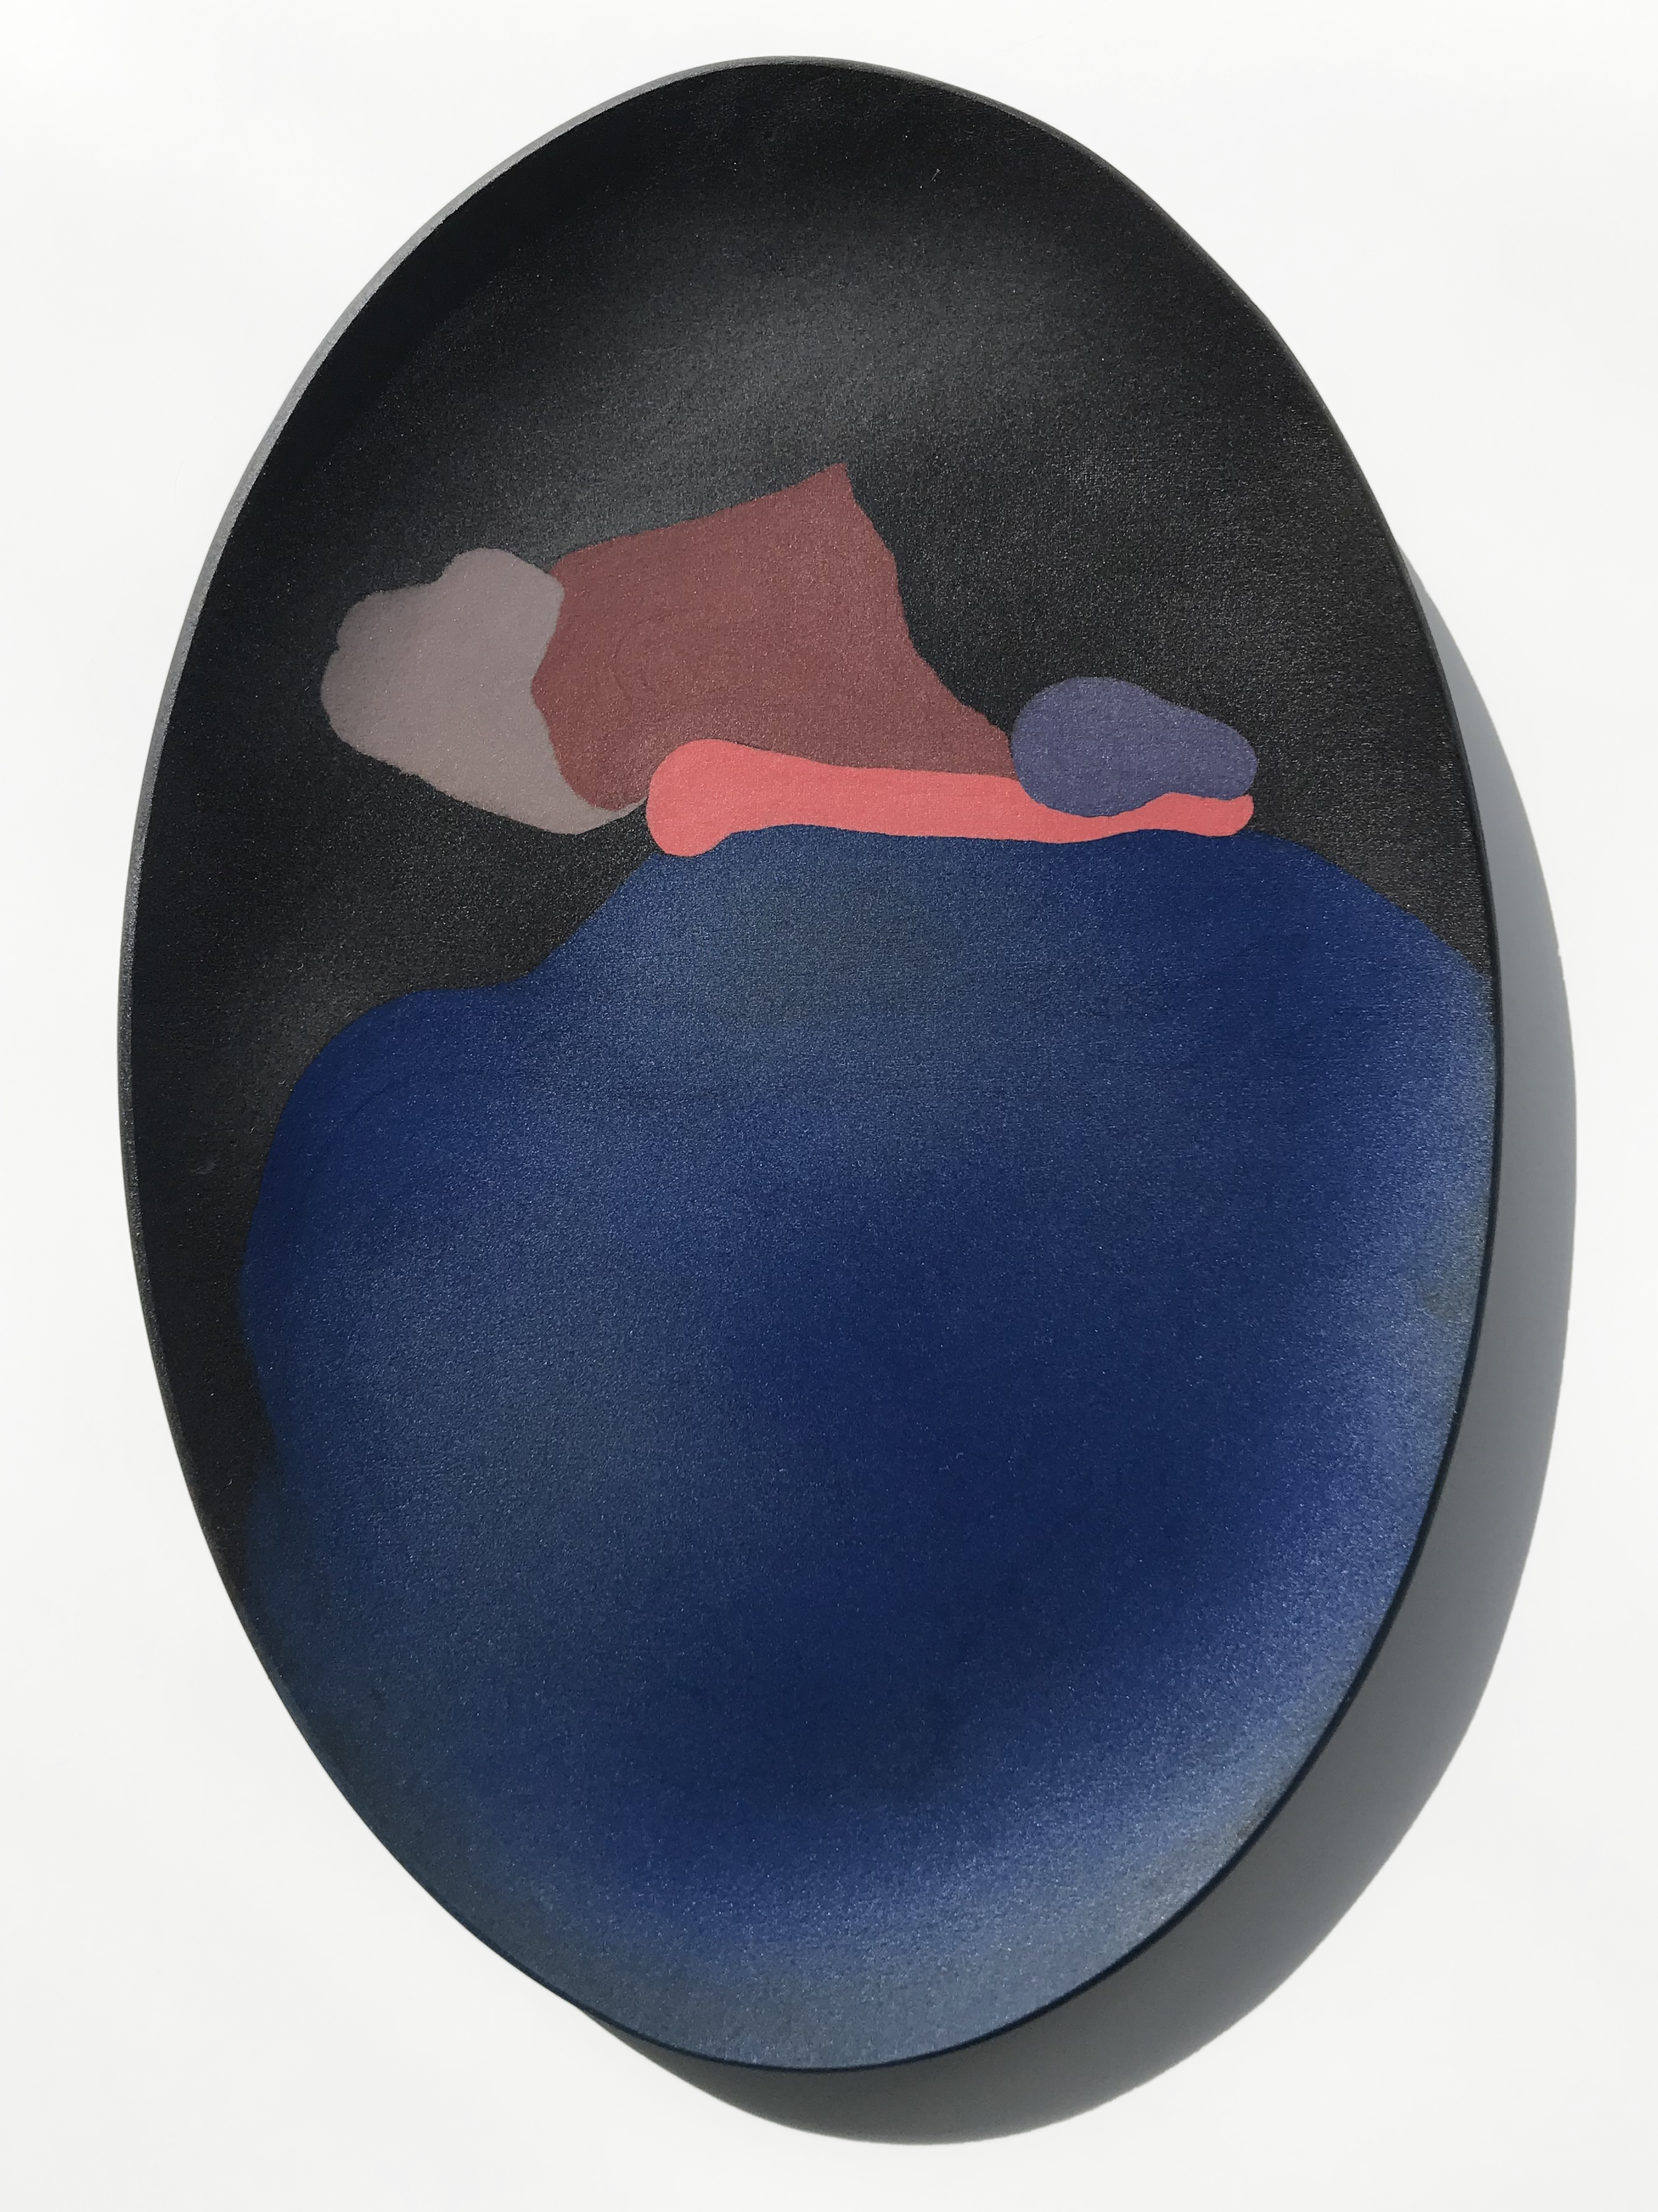 LARGE OVAL - Dimensions: 28 x 20.5 cm